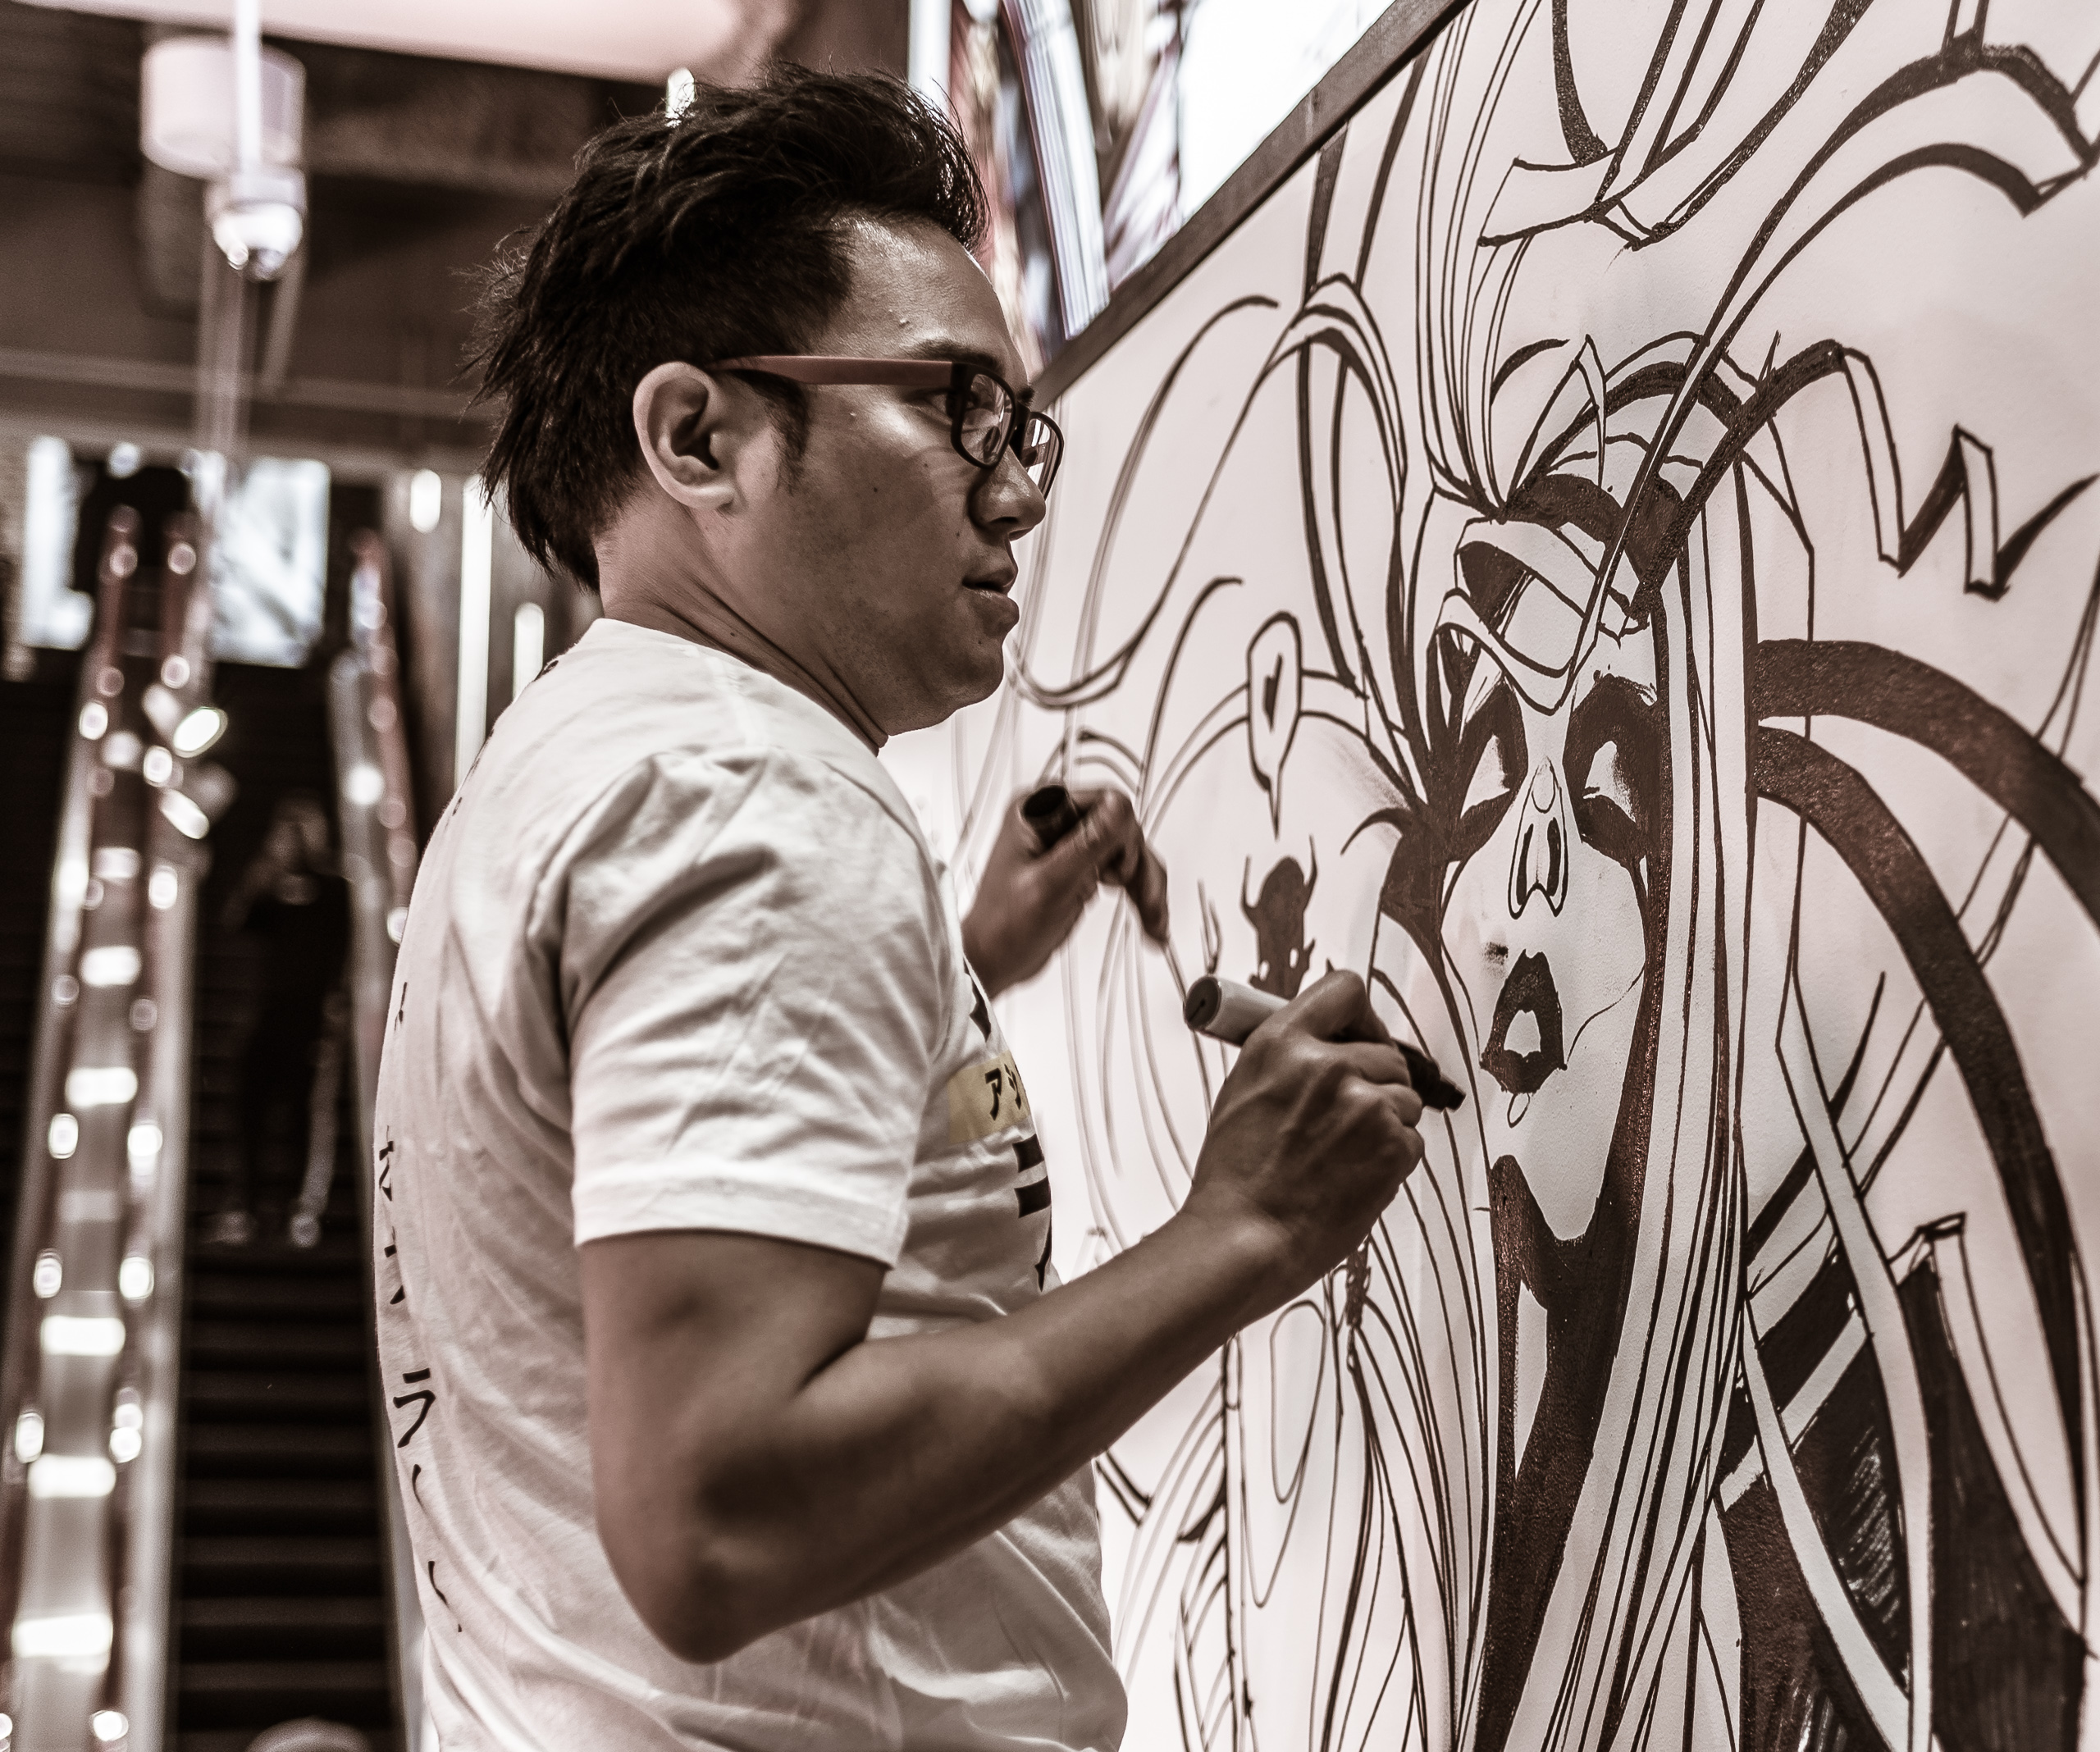 Patrick Ballesteros of Secret Walls painting at Footlocker on Hollywood & Highland in Hollywood, Los Angeles, California